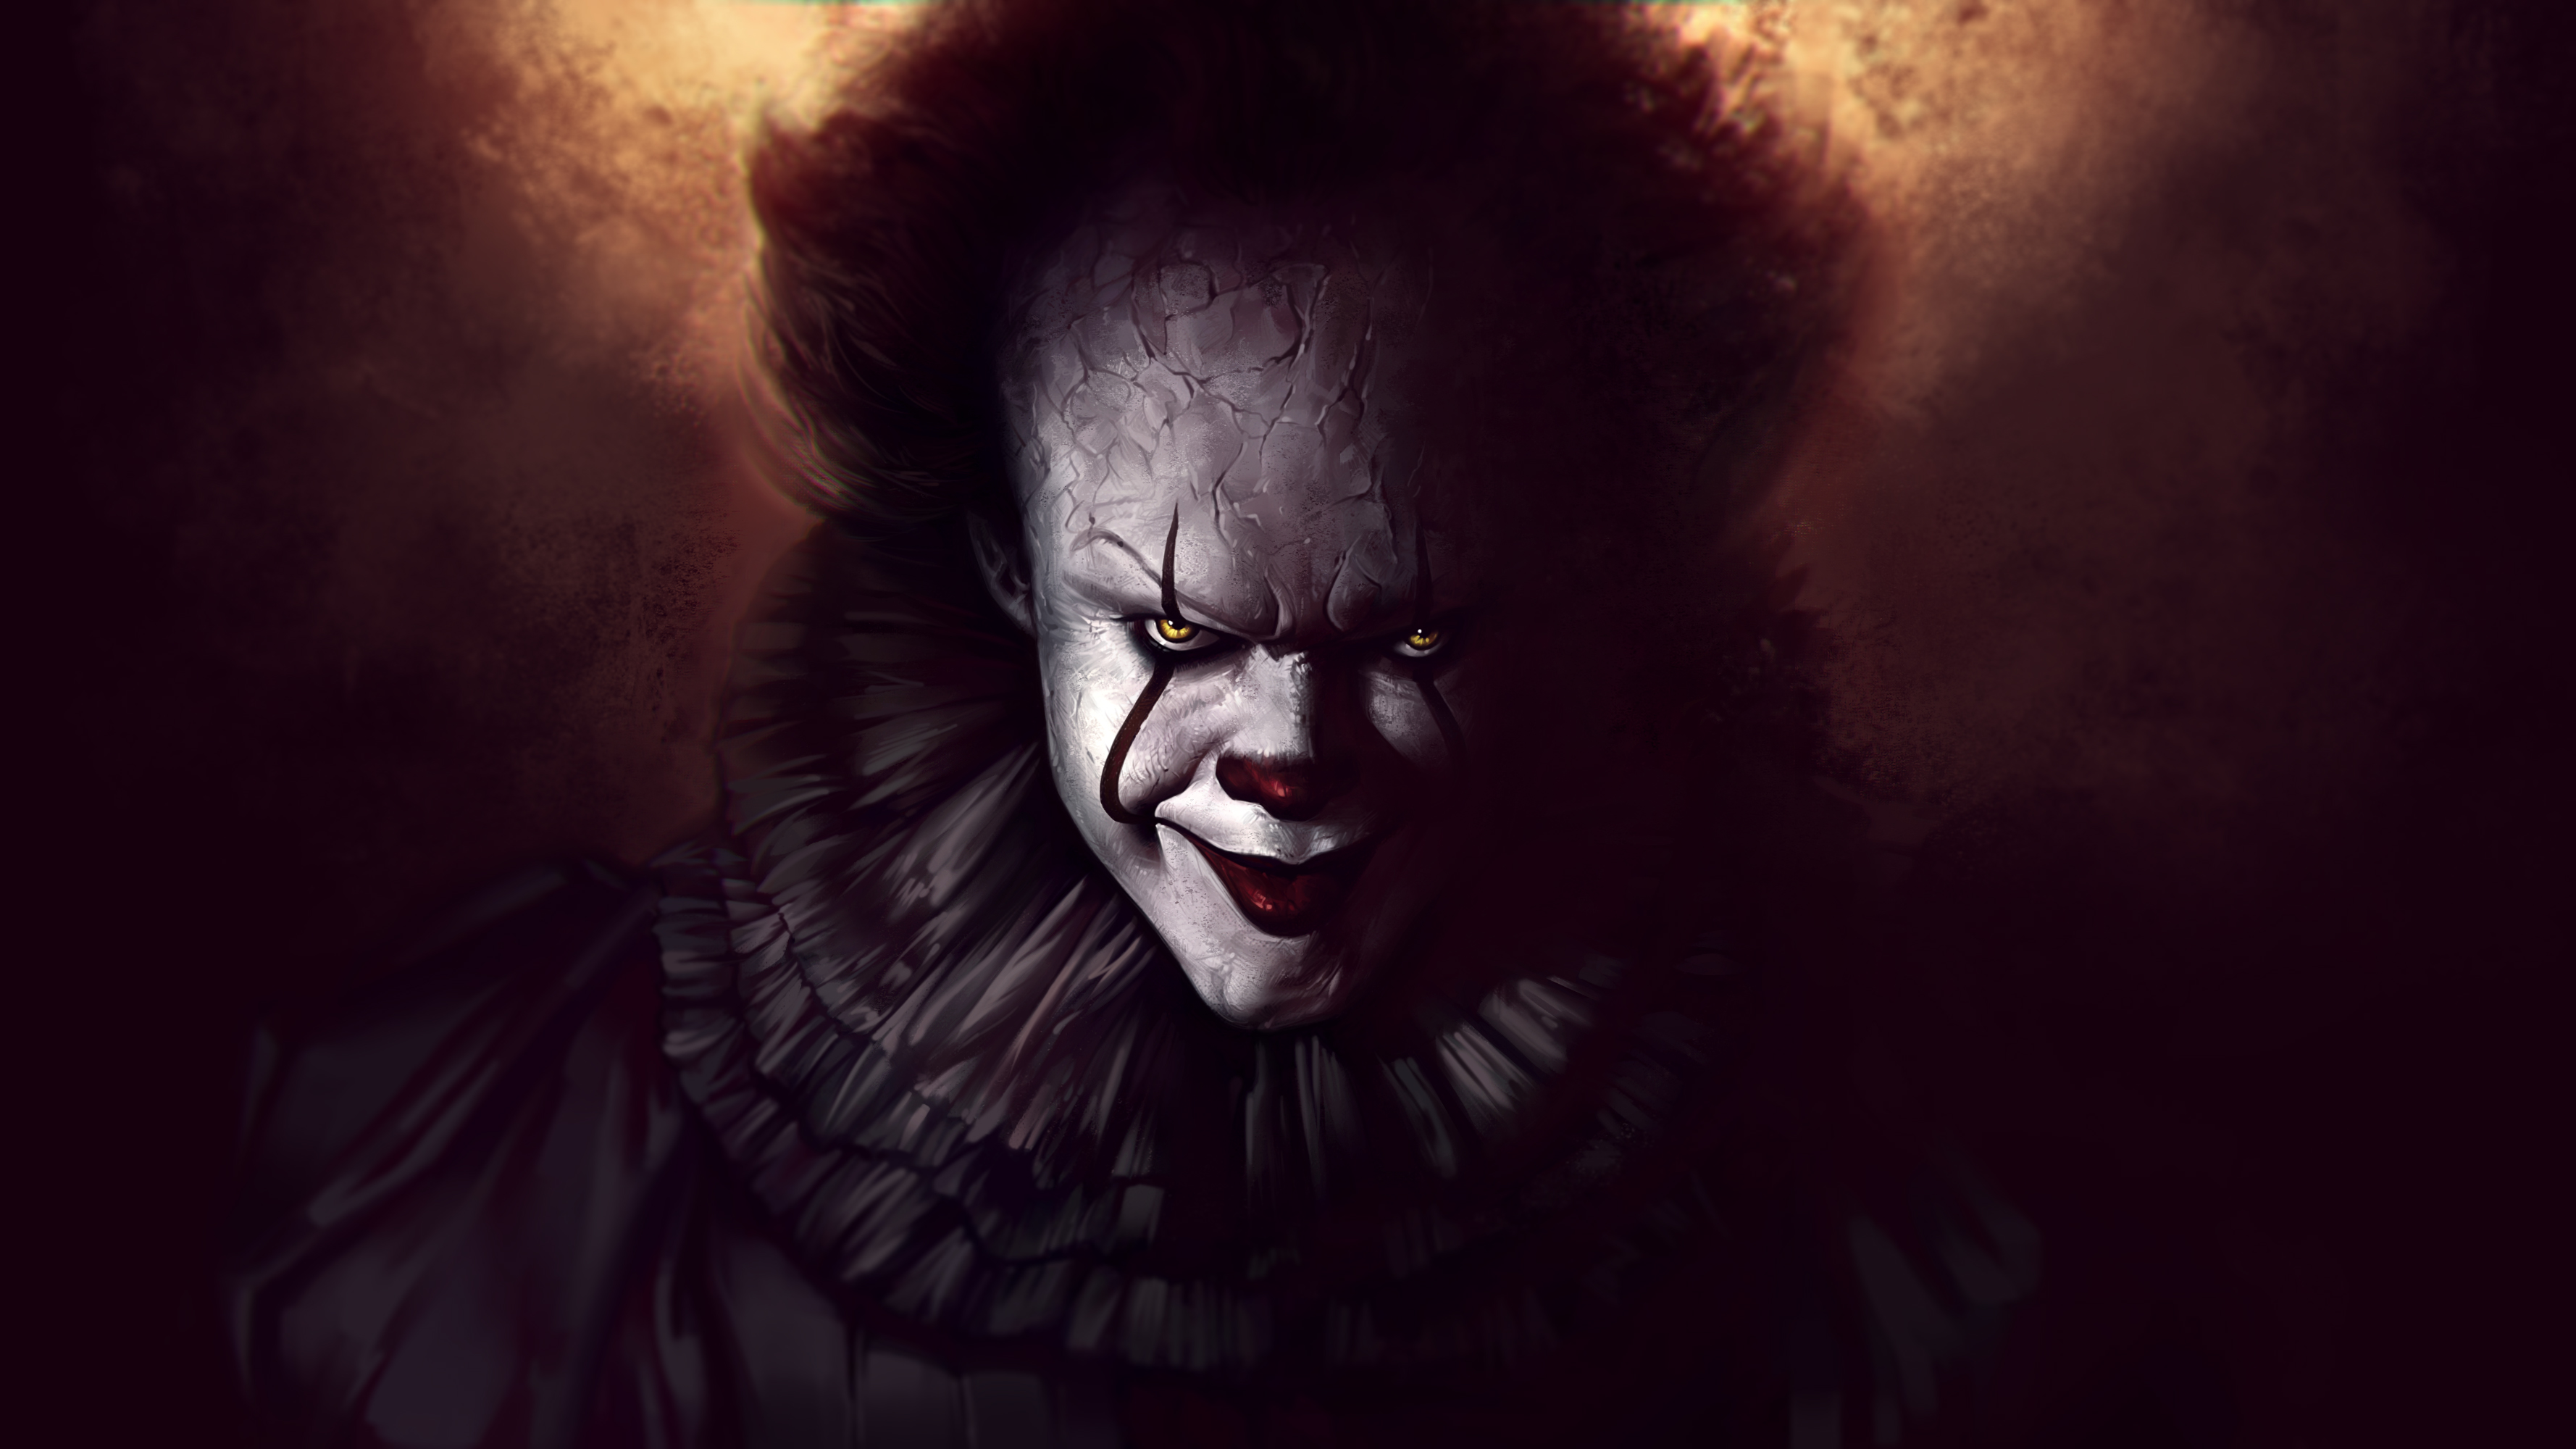 3d Clown Wallpaper Pennywise The Clown Fanart Hd Movies 4k Wallpapers